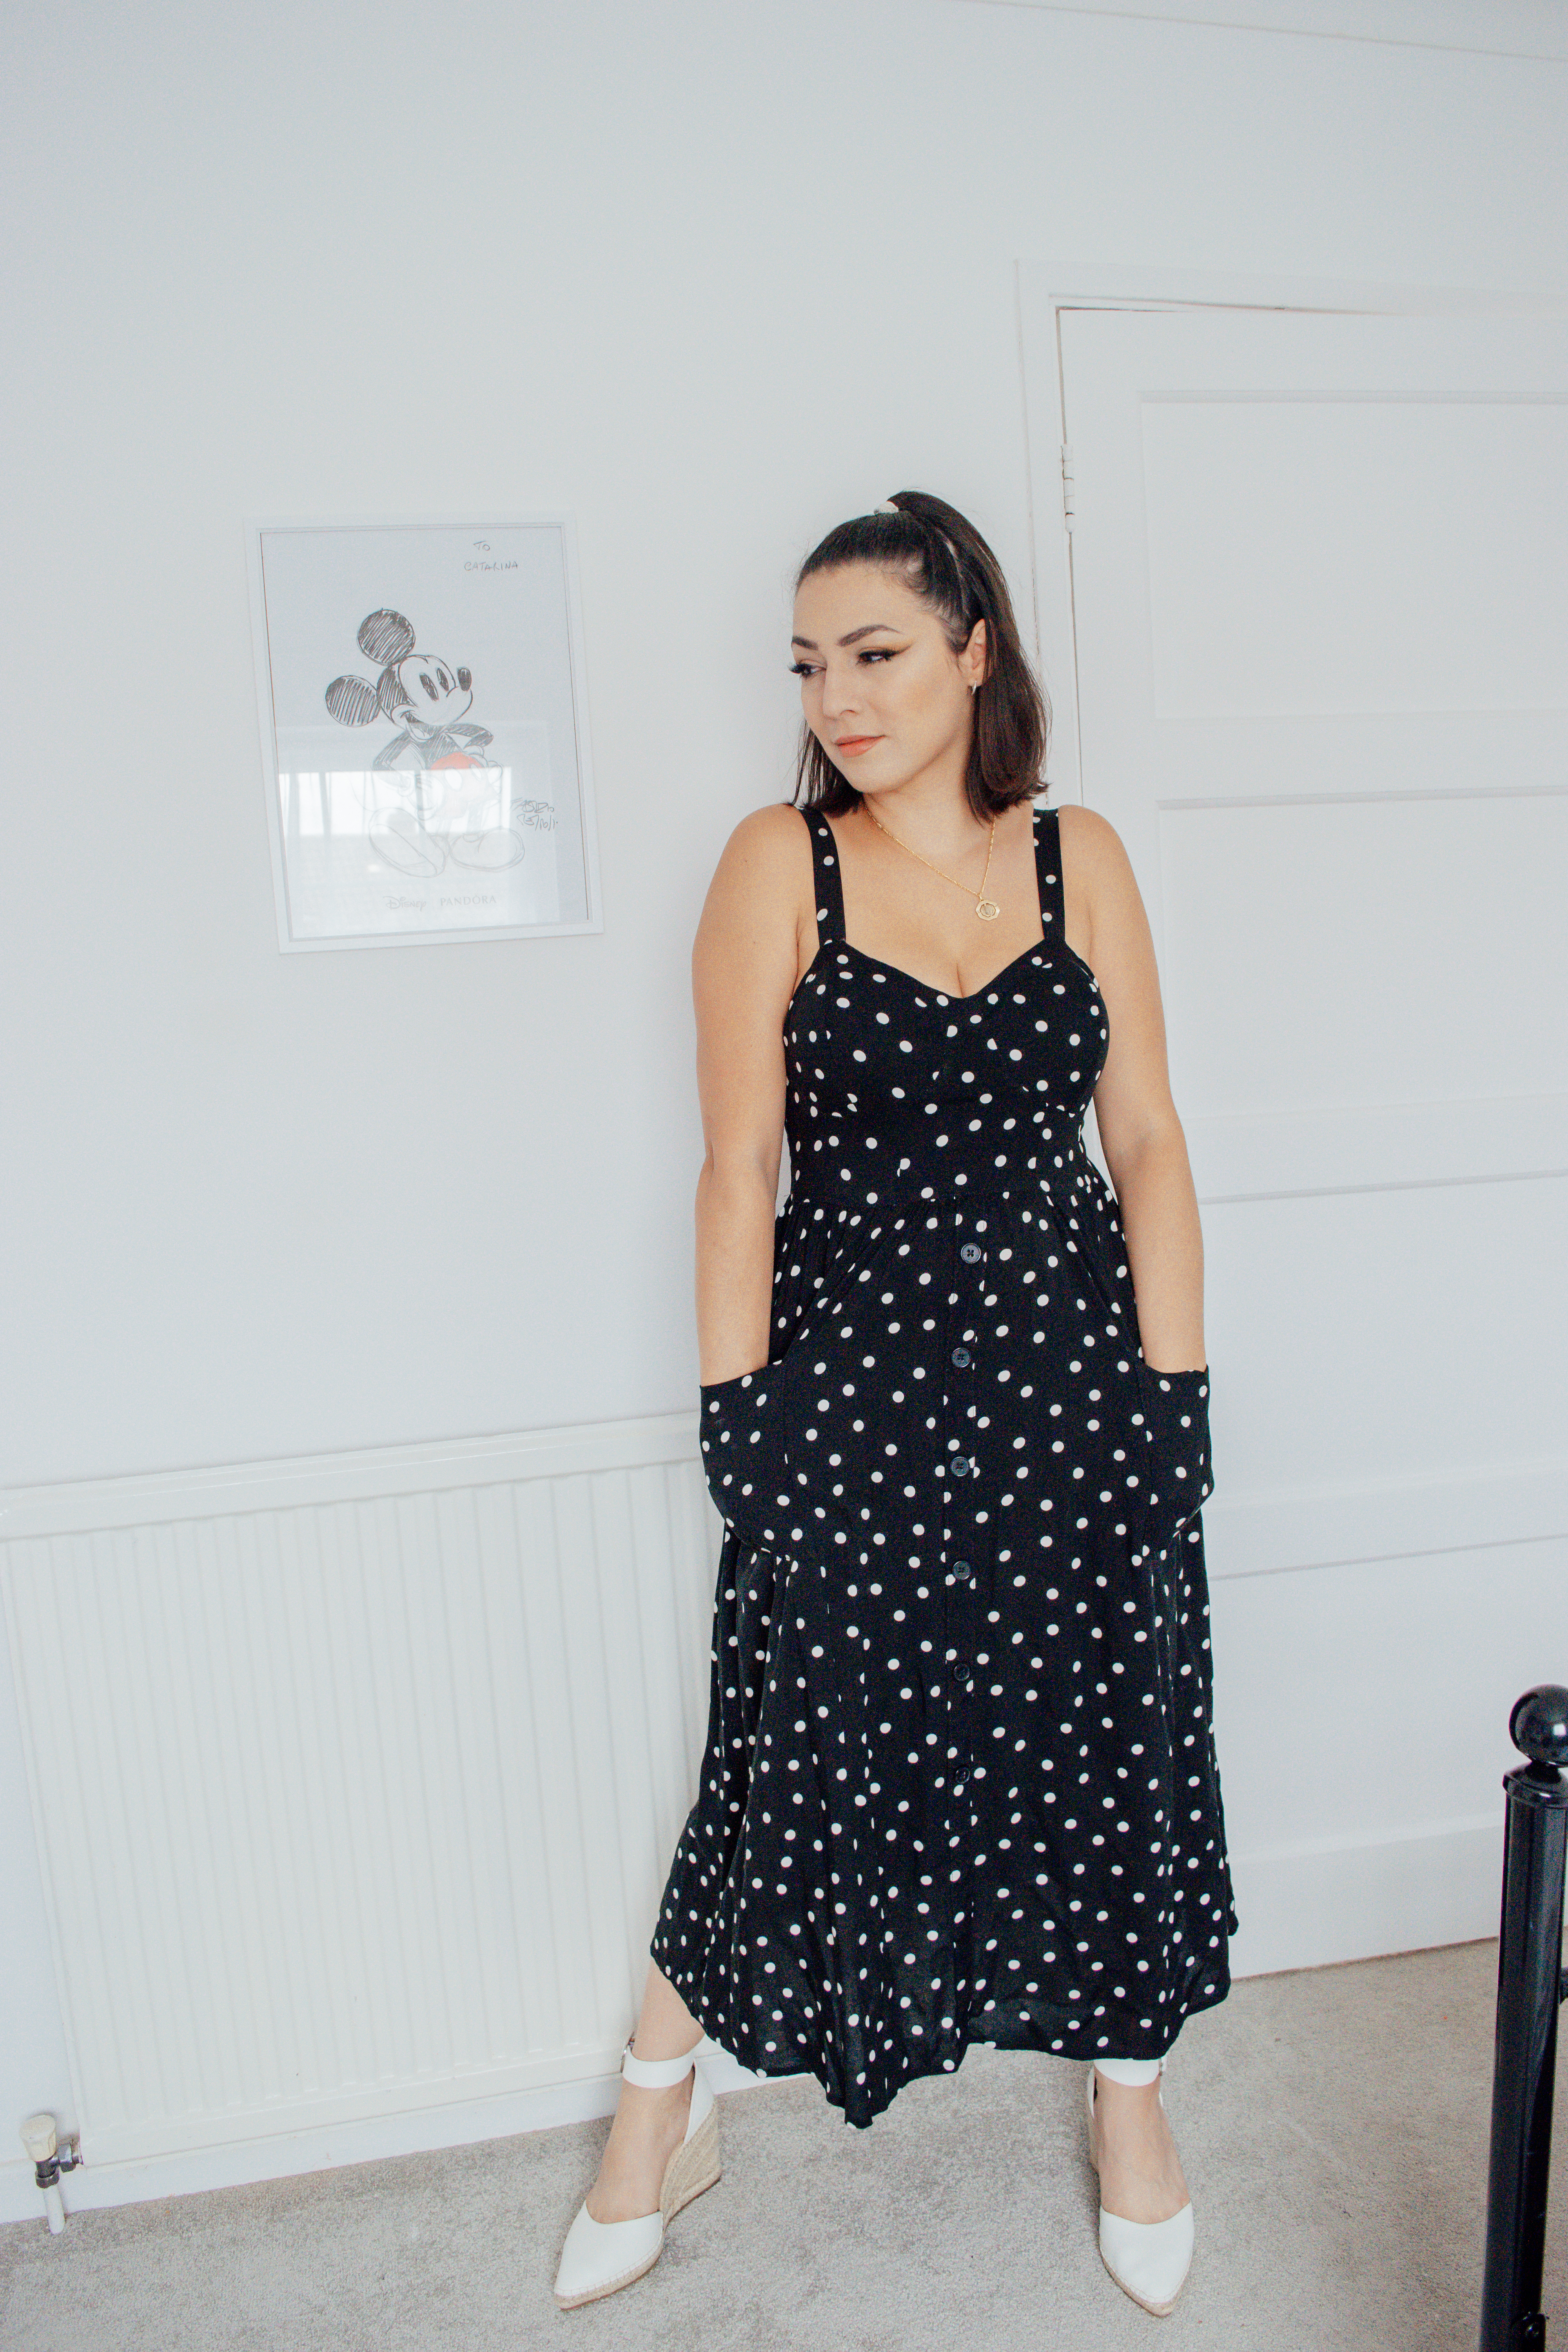 Girl wearing a black polka dot midi dress with hands in pockets